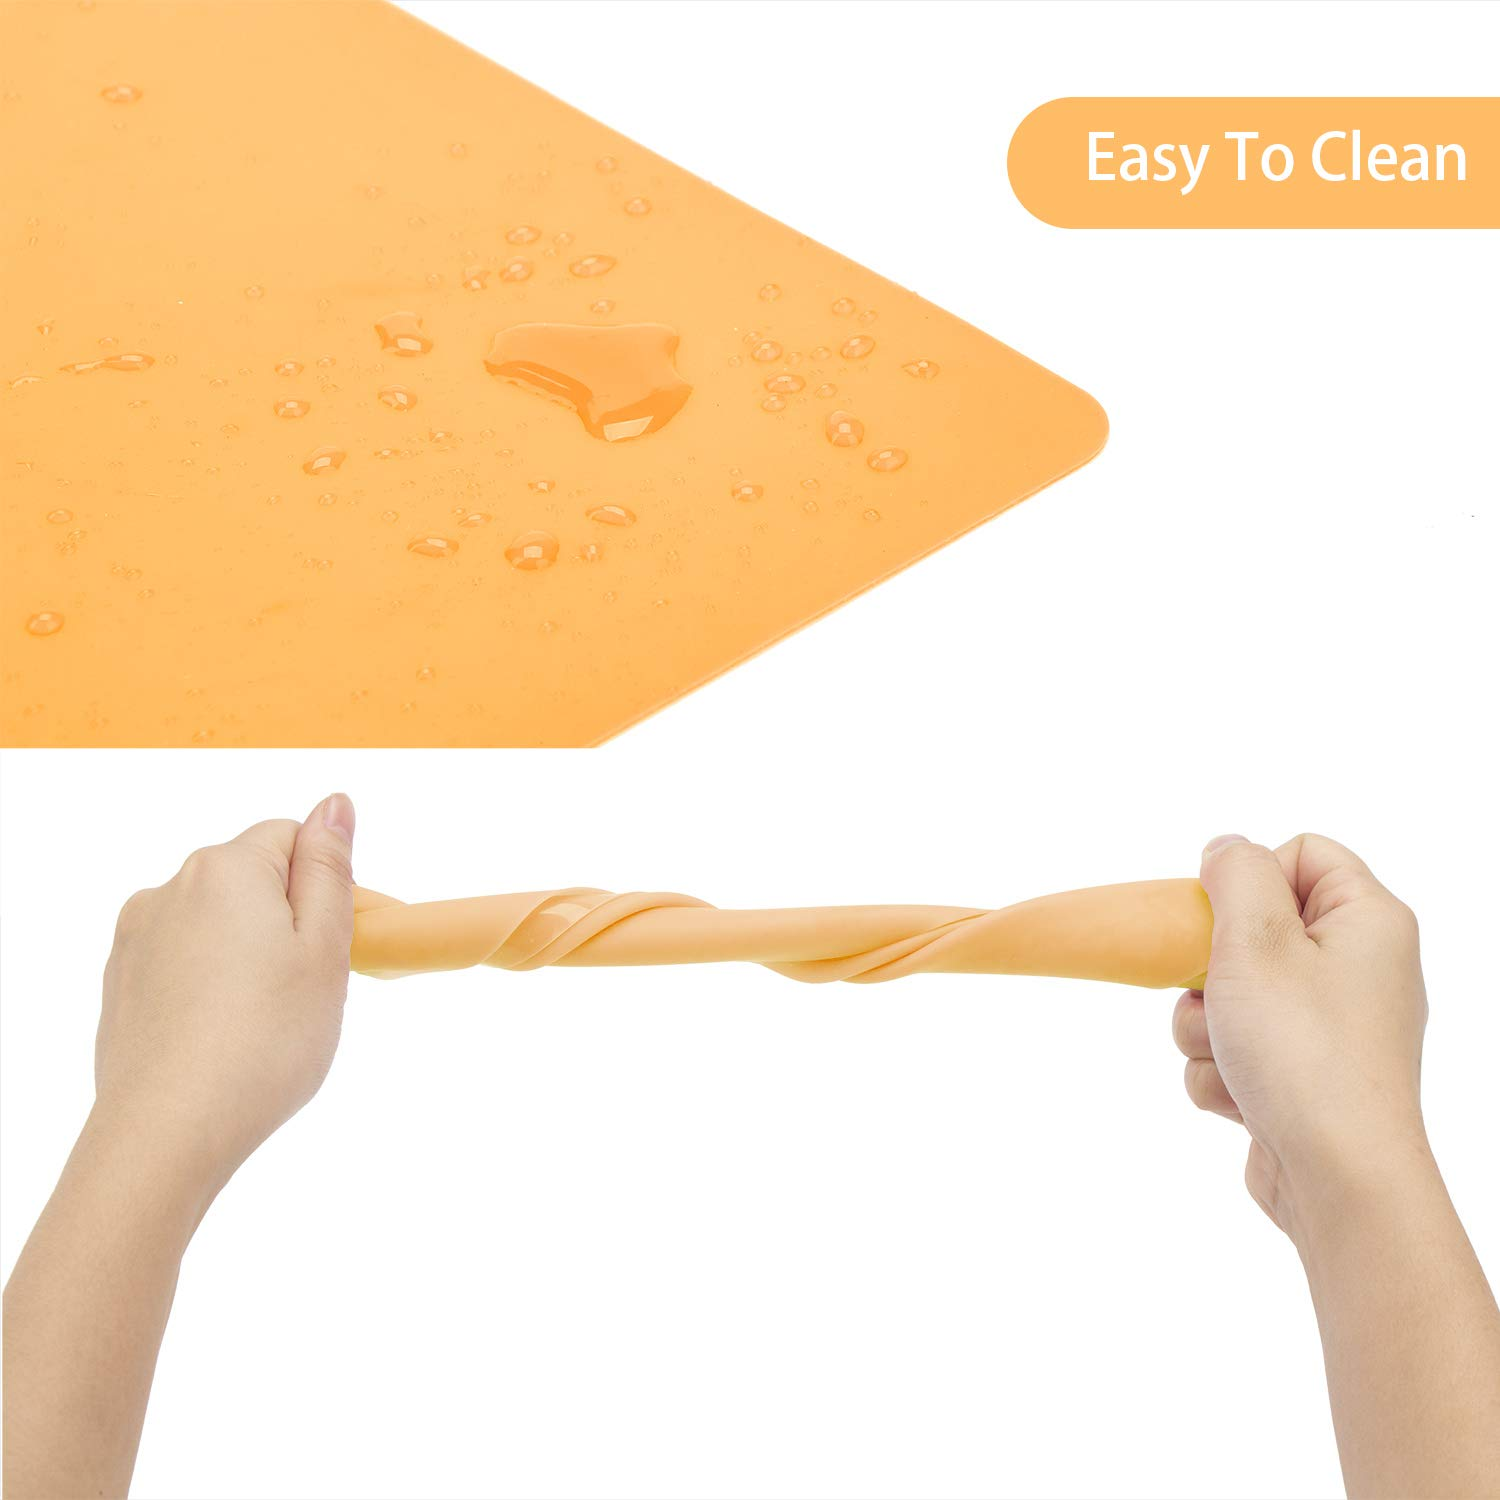 Countertop Protector Heat Resistant Gartful 3 Pack Medium Silicone Sheet for Crafts Resin Jewelry Casting Molds Mat Orange 15.7 x 11.8 inches Nonstick Nonskid Multipurpose Counter Table Mat Placemat